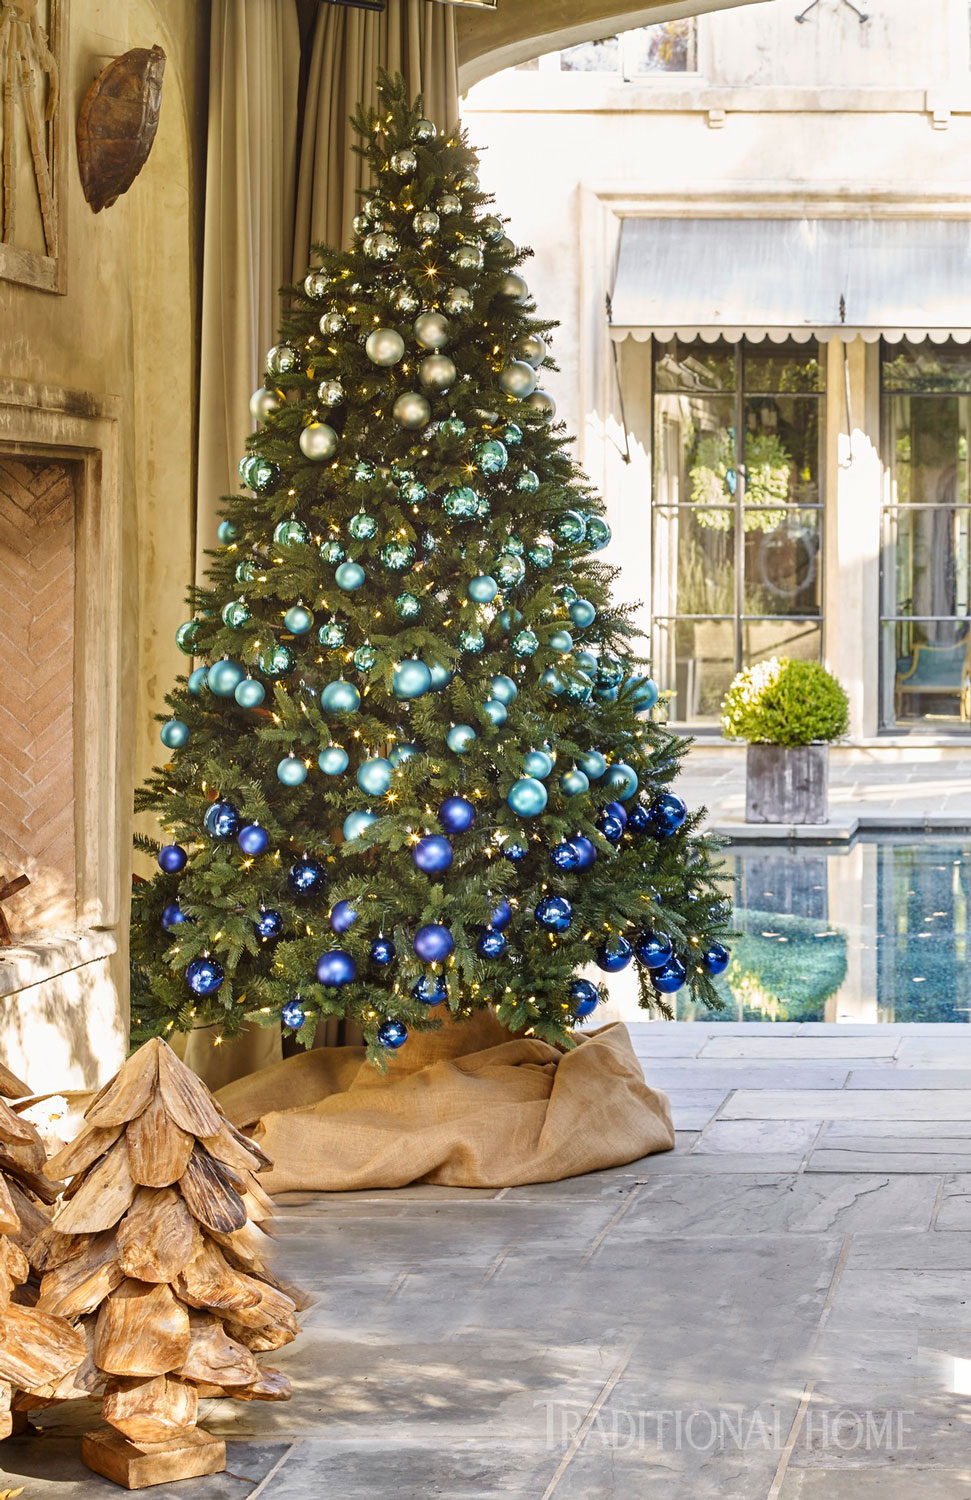 Christmas decoration with candles that spins - Shatterproof Ornaments In Shades Of Blue Lend An Ombr Effect To The Tree In This Outdoor Living Area The Colors Of The Ornamnets Mimc The Colors Of The